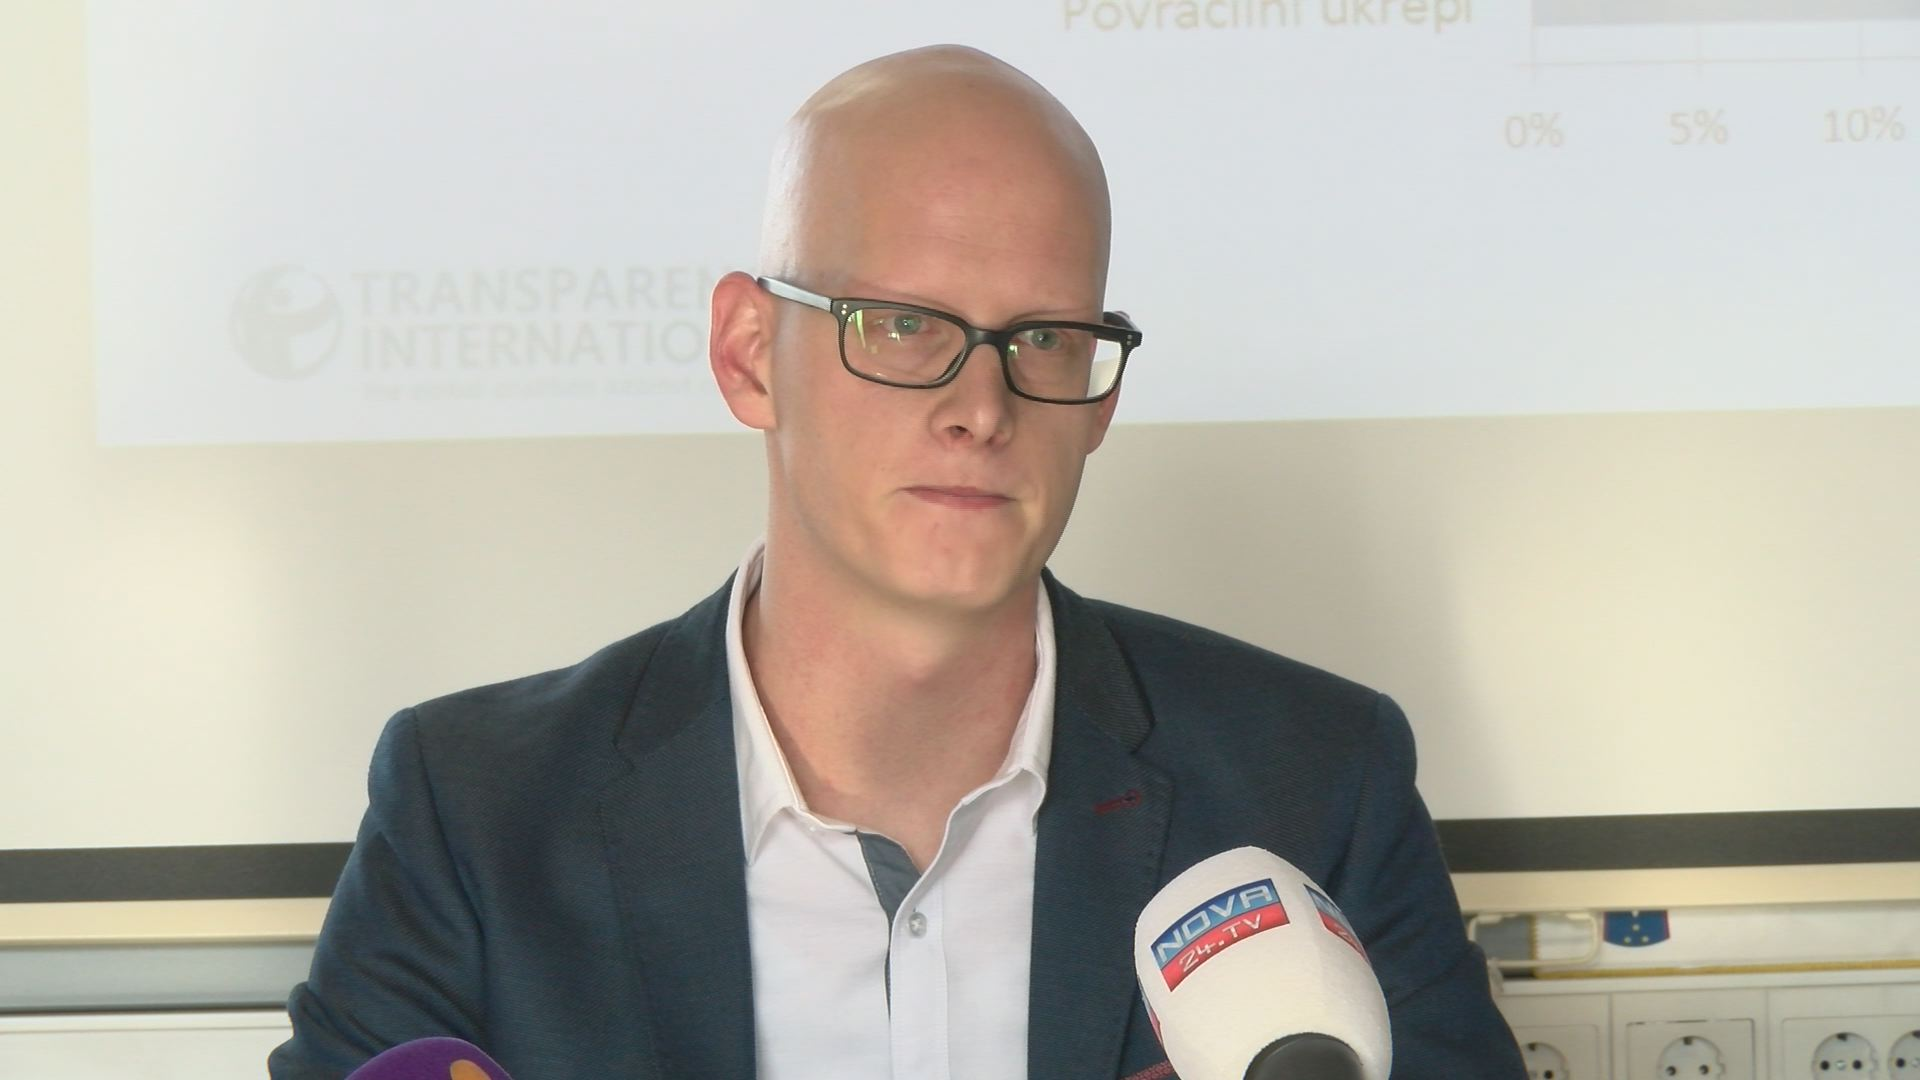 Jan Doria, generalni sekretar Transparency International Slovenia (Foto: Nova24TV)